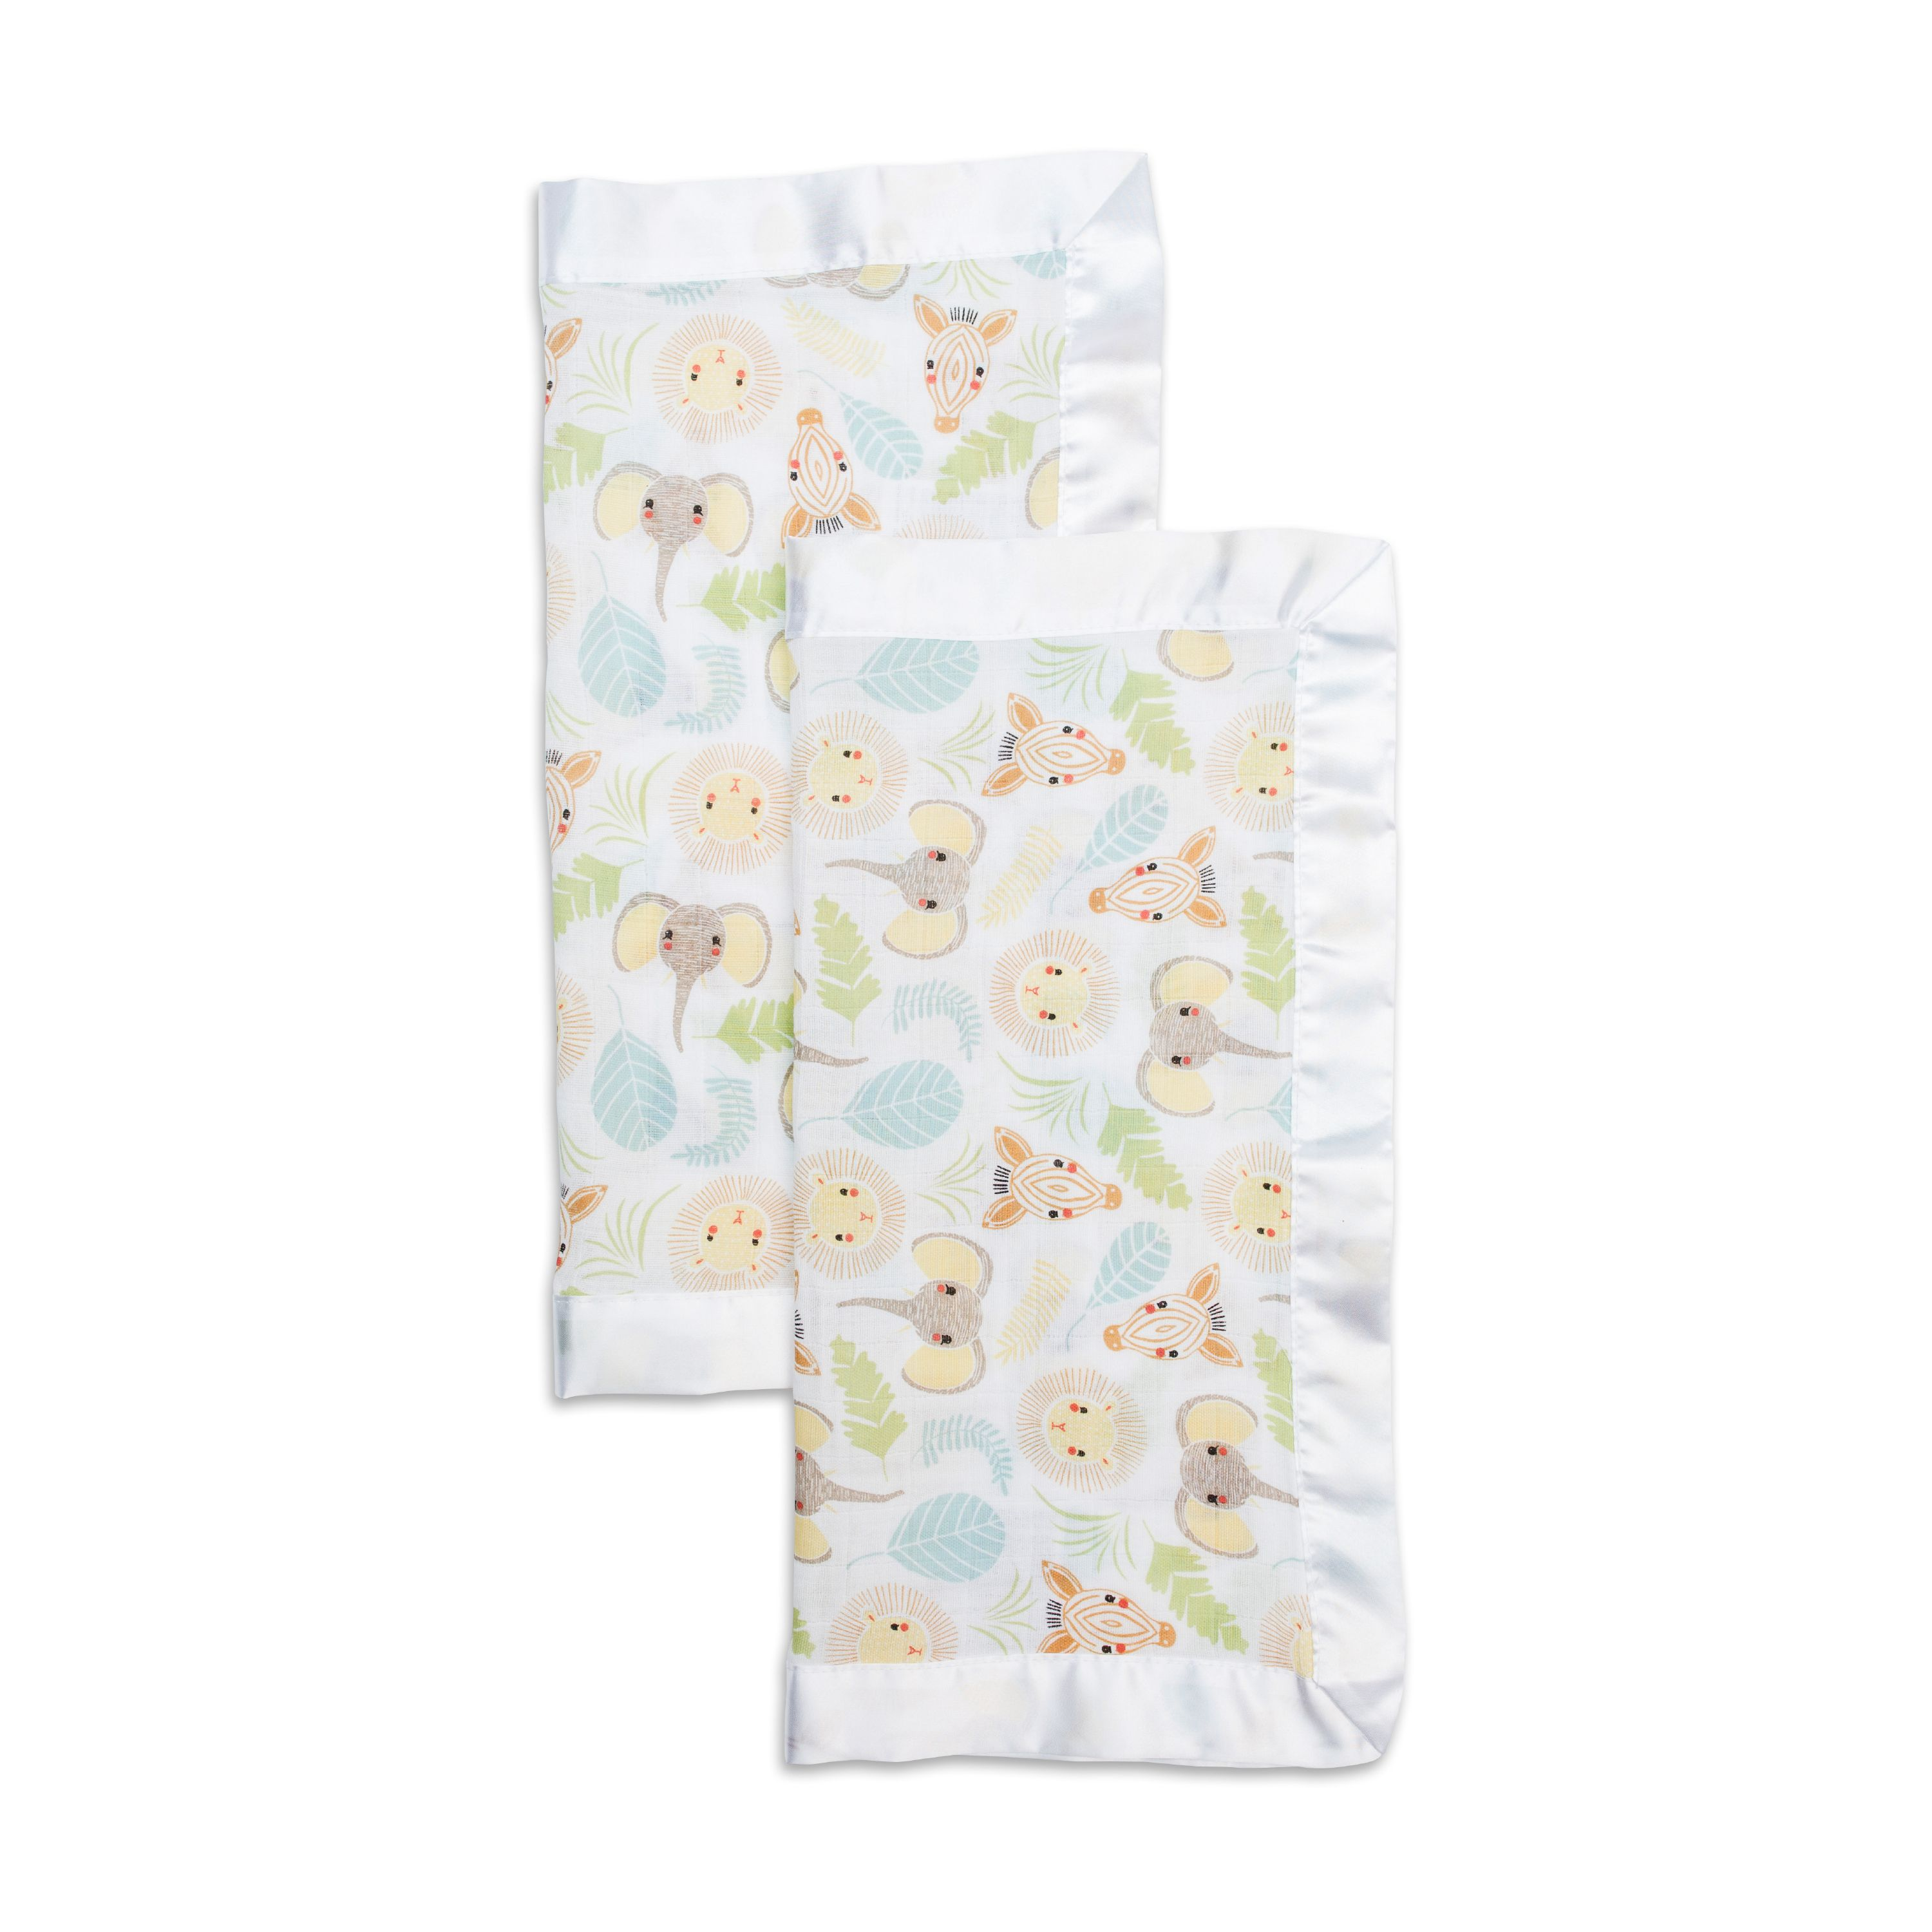 LuLuJo Baby Security Blankets Comforters with Silk Trim - 2 Pack - Jungle